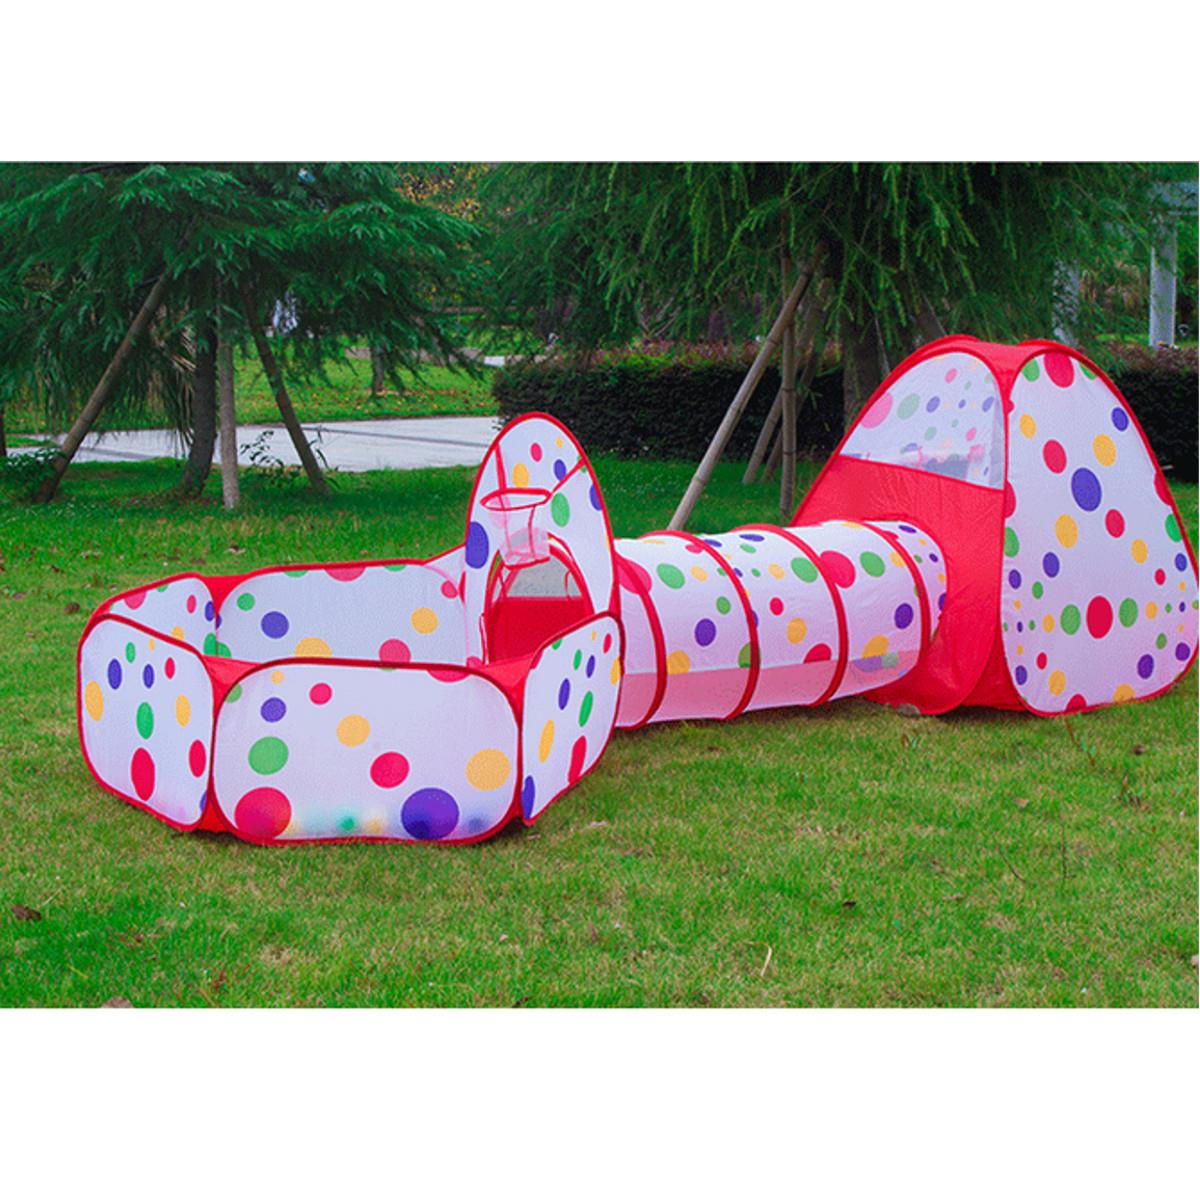 3pcs set Foldable font b Kids b font Toddler Tunnel Pop Up Play Tent Toys For